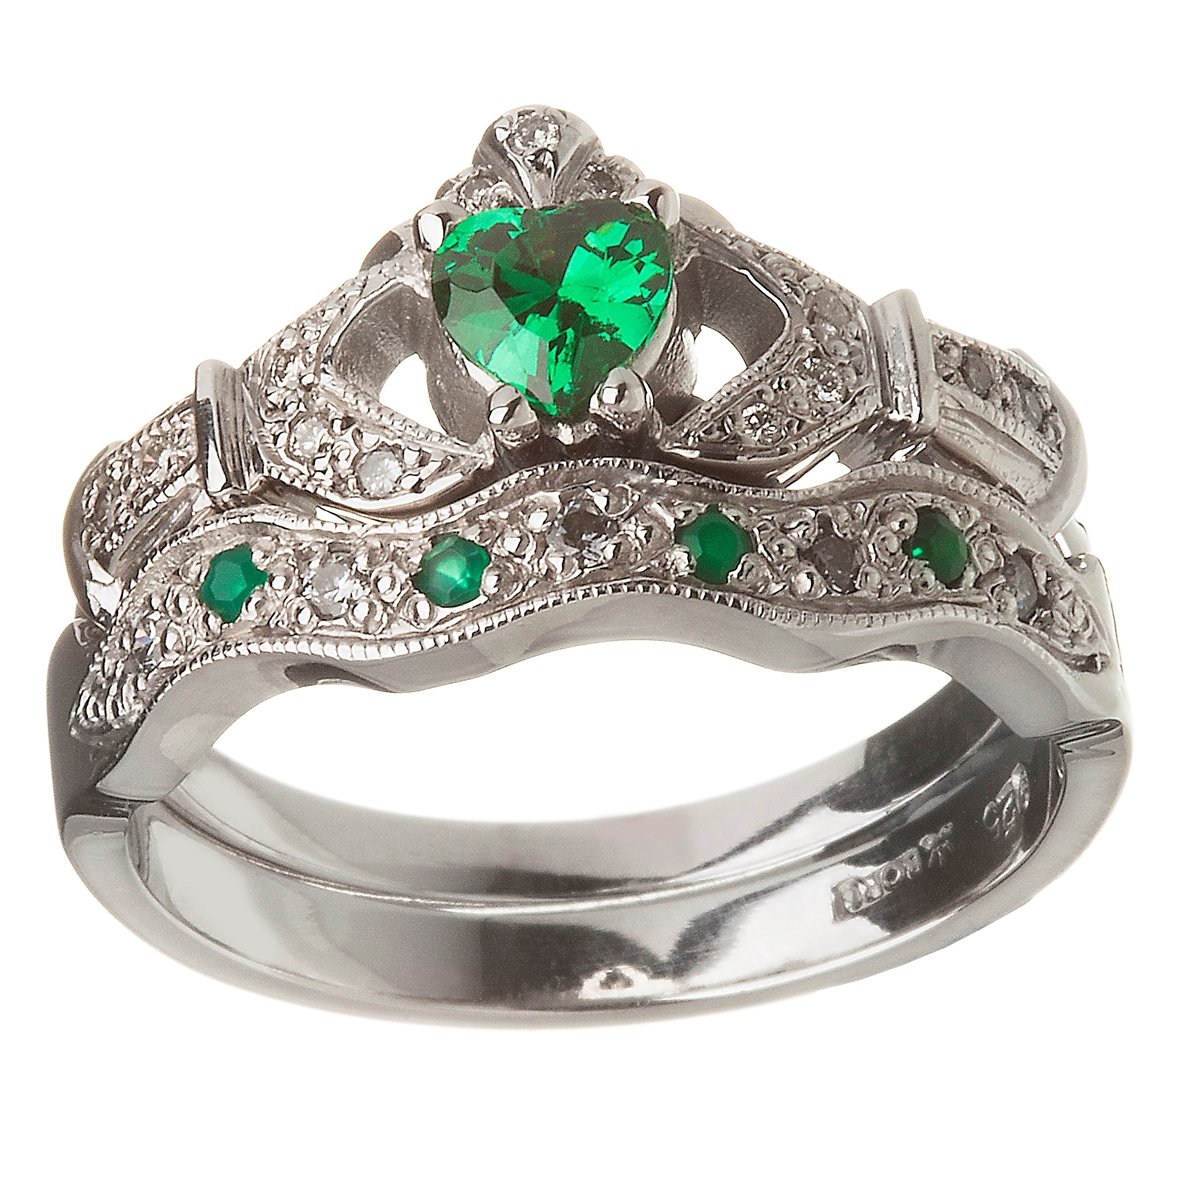 14k white gold emerald set heart claddagh ring wedding ring set - Mens Claddagh Wedding Ring